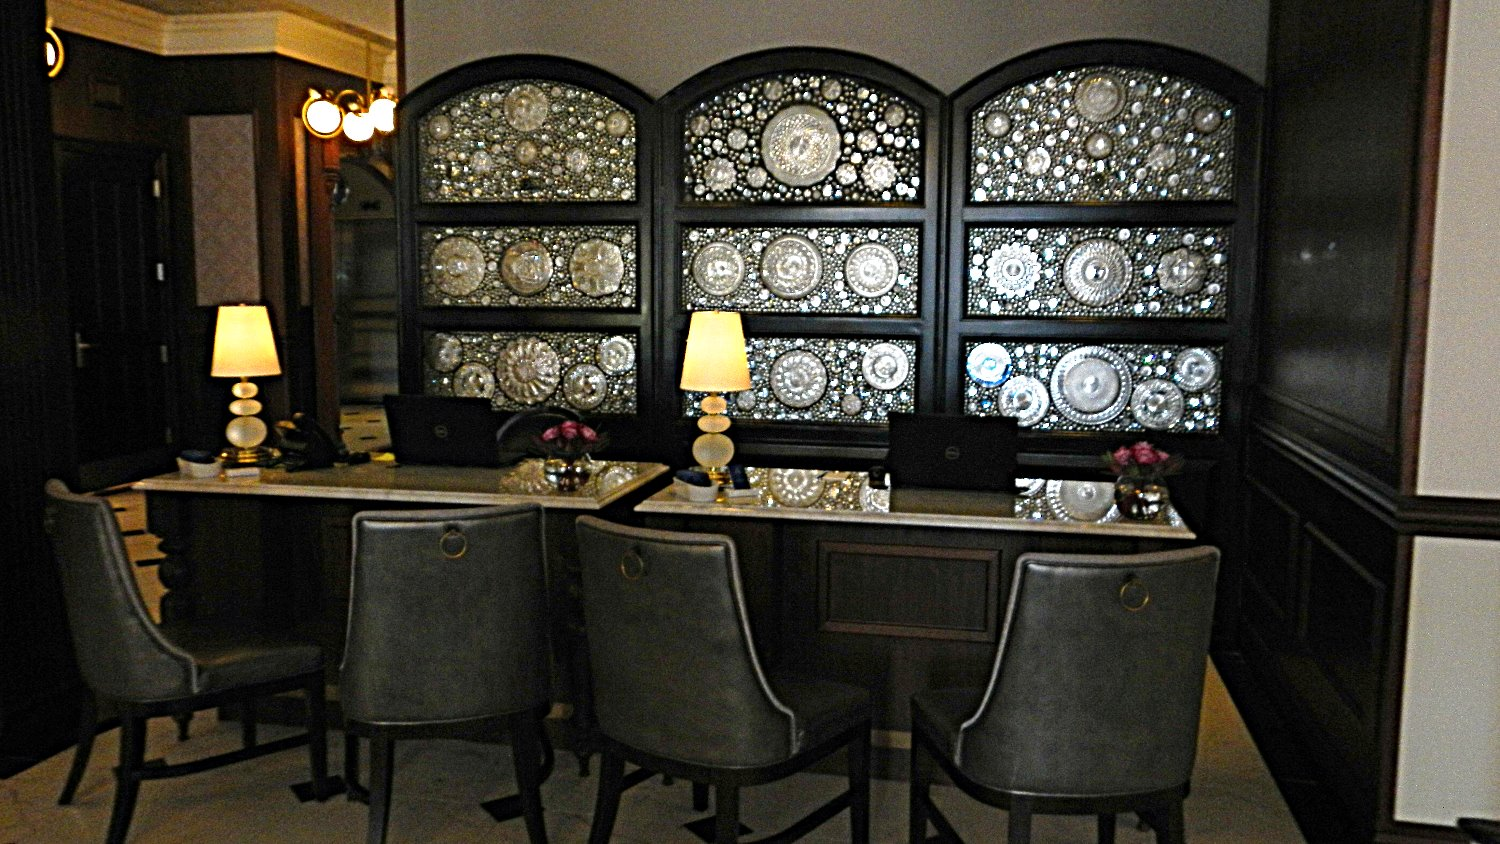 Dinner plates from the original hotel were used in the decor of the reception area at The Adelphi Hotel